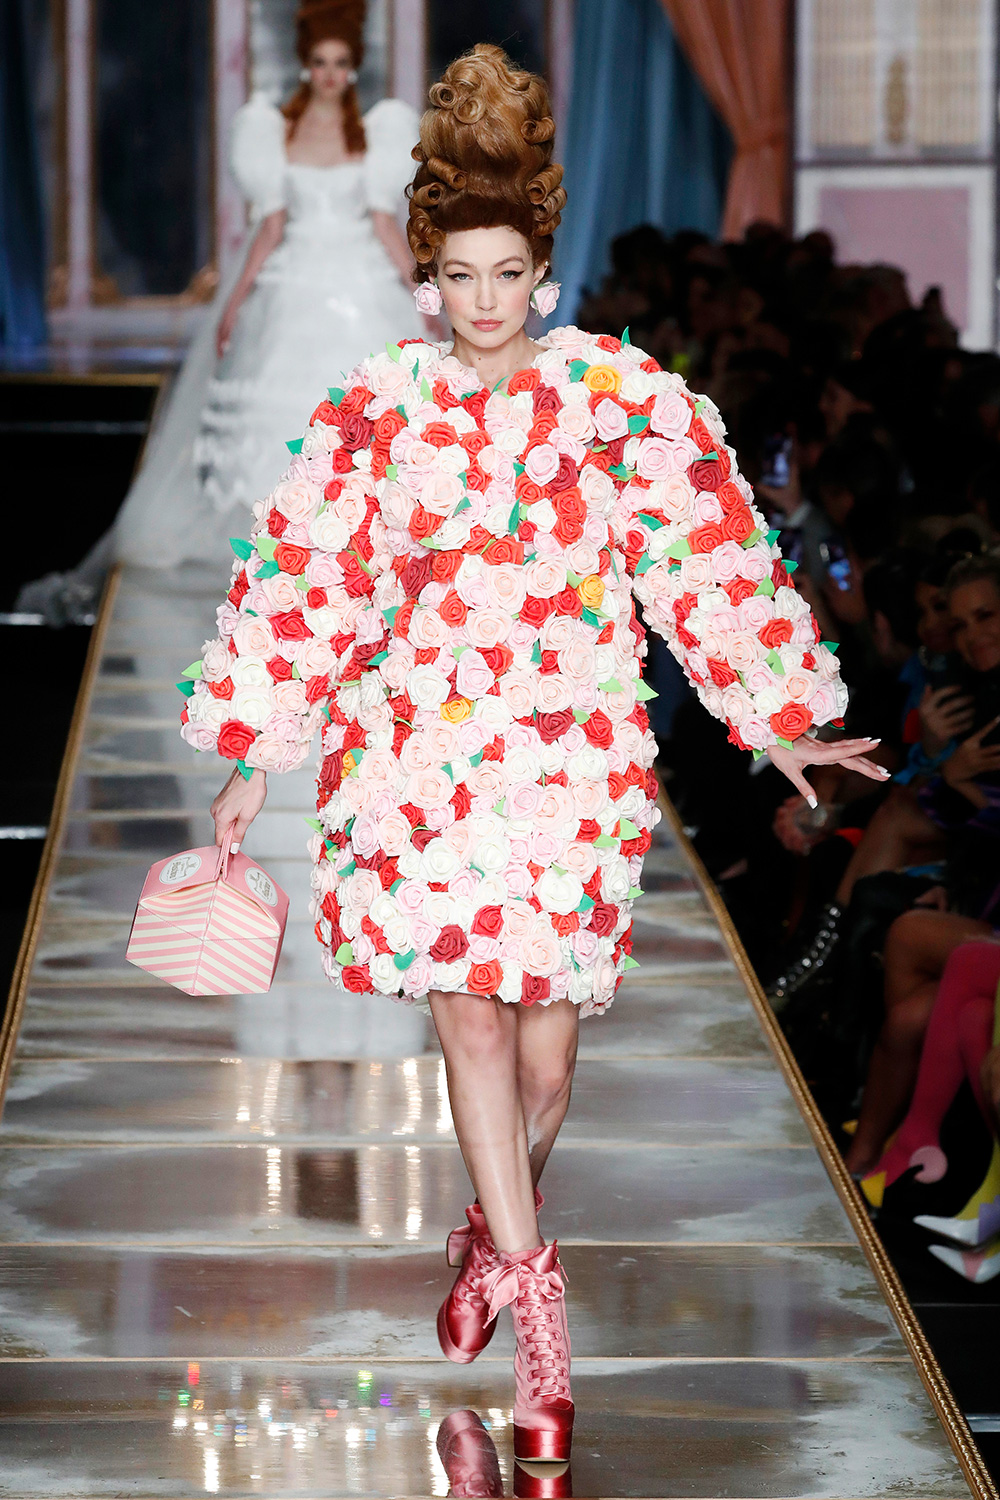 Gigi Hadid walks the runway during the Moschino fashion show as part of Milan Fashion Week Fall/Winter 2020-2021 on February 20, 2020 in Milan, Italy